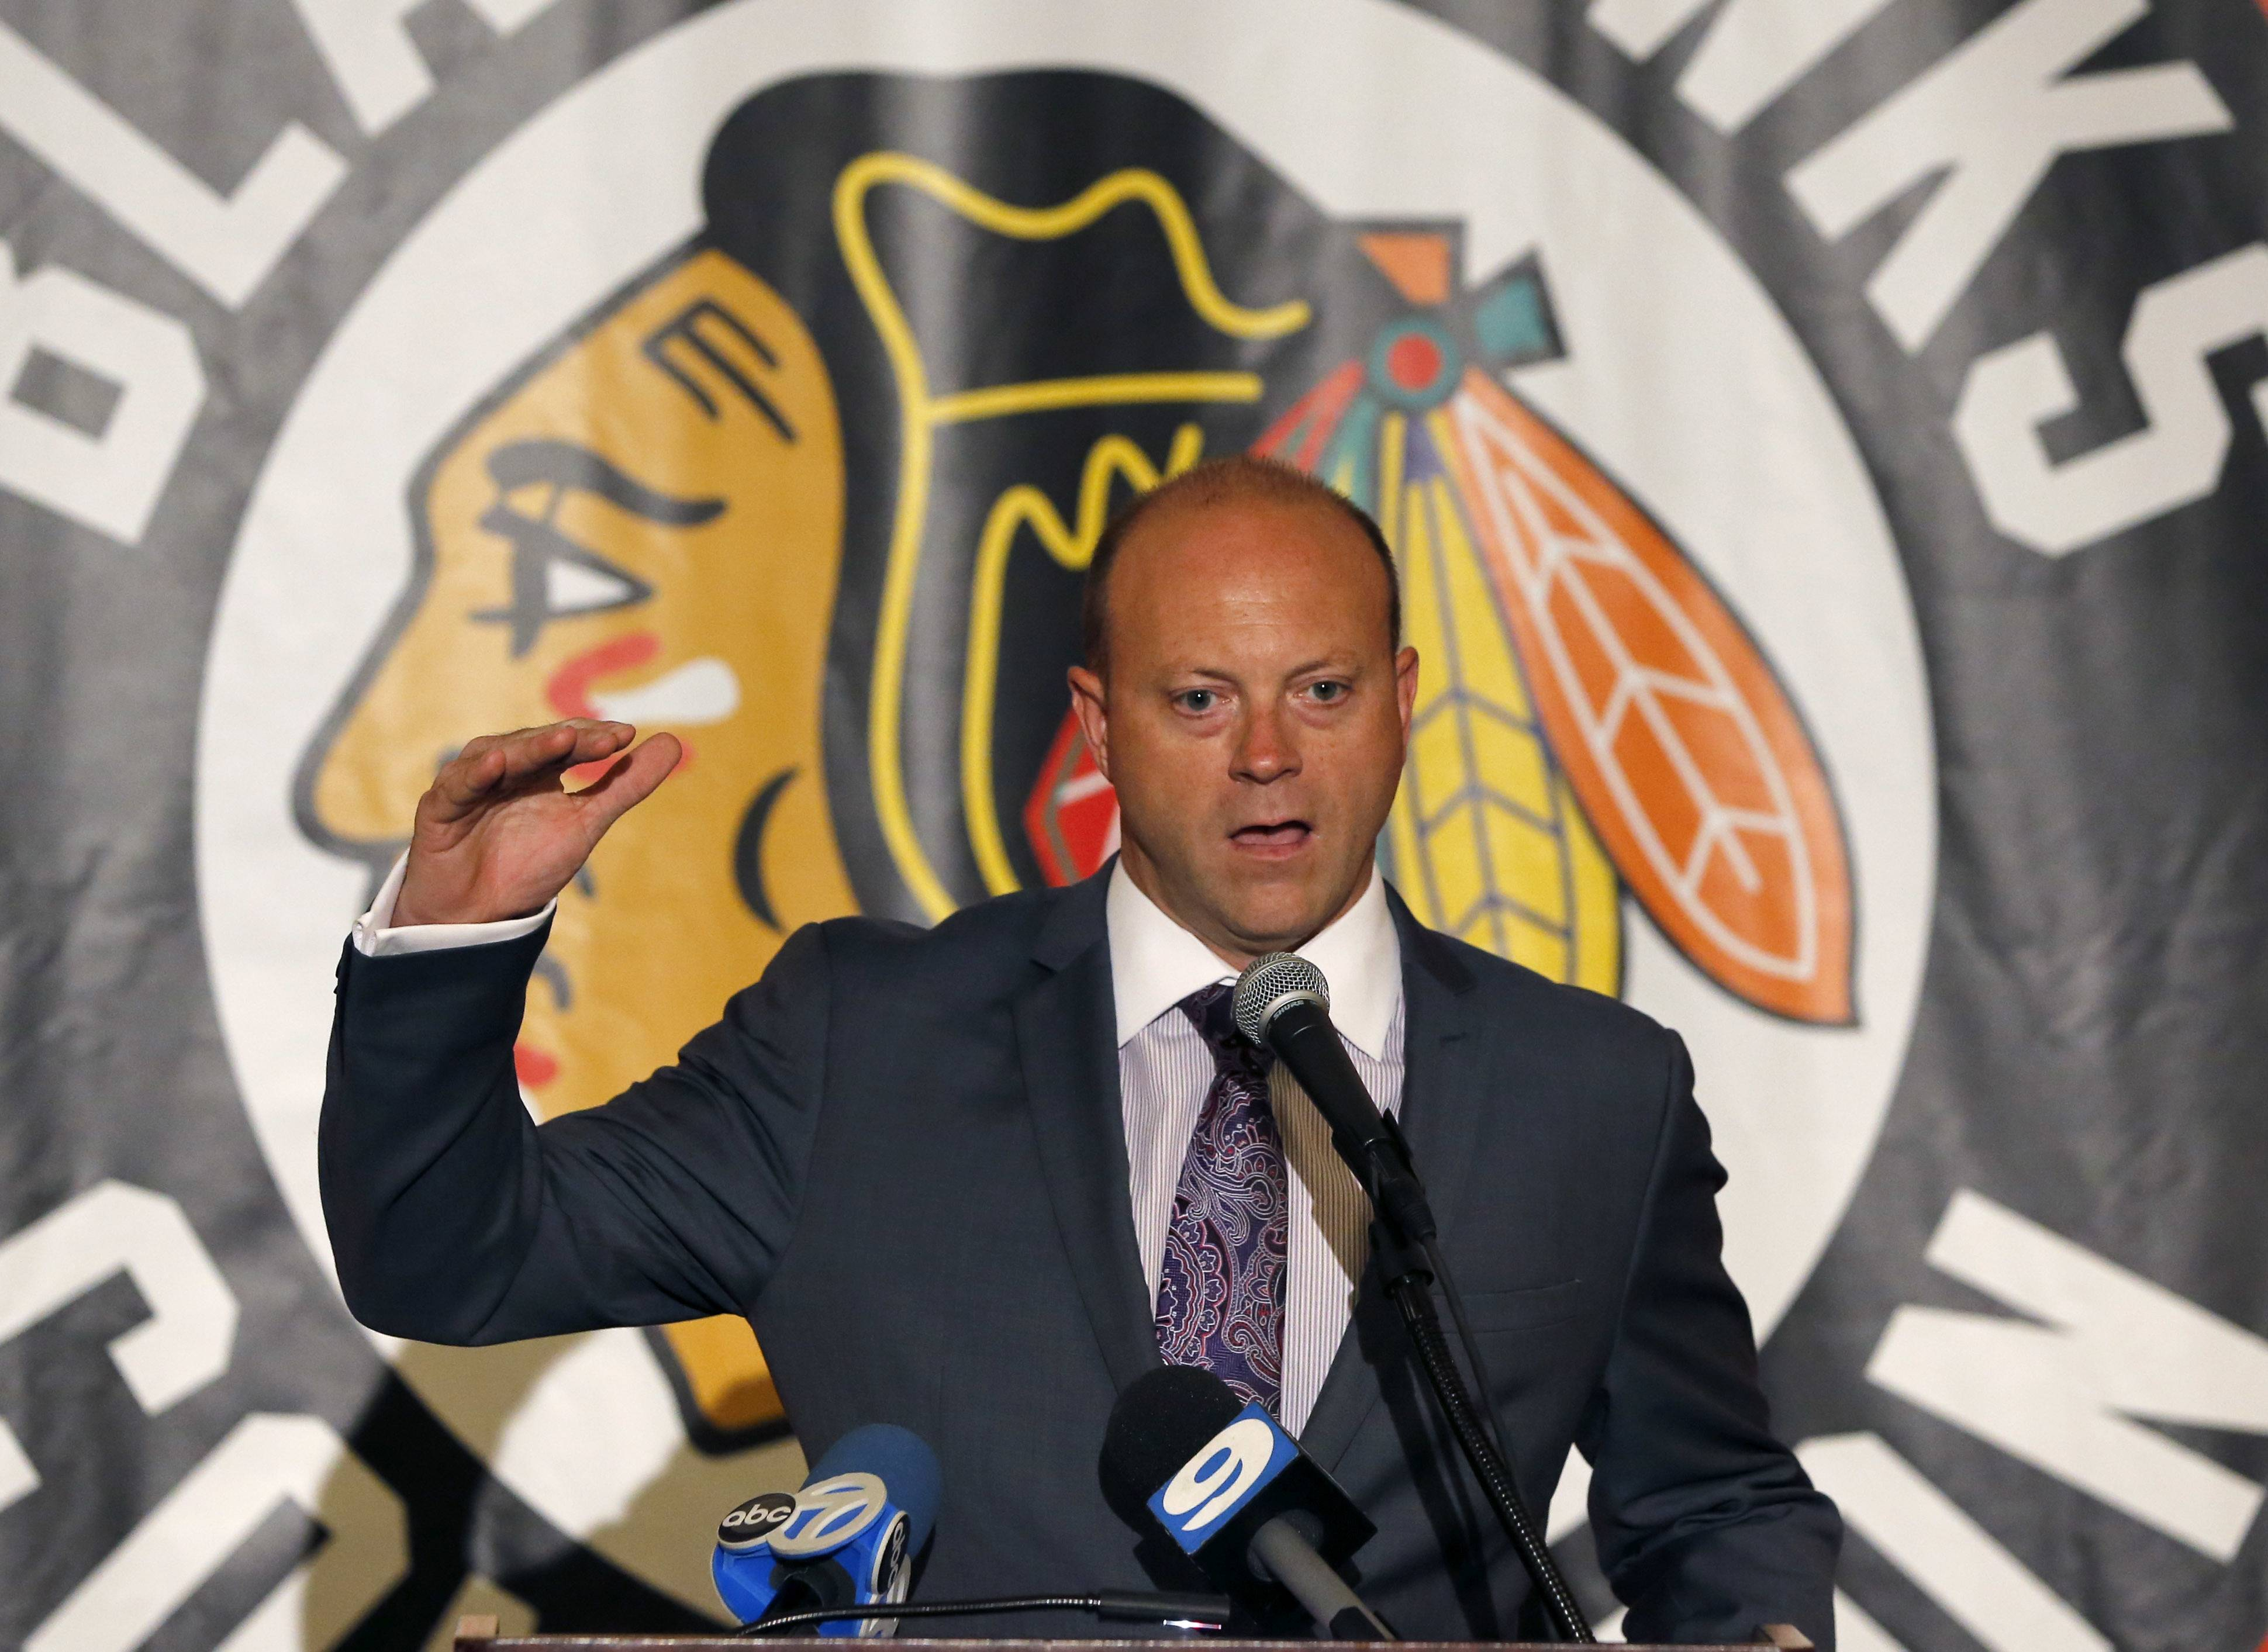 The Blackhawks and general manager Stan Bowman have the No. 26 pick in the first round of the tonight's NHL draft.